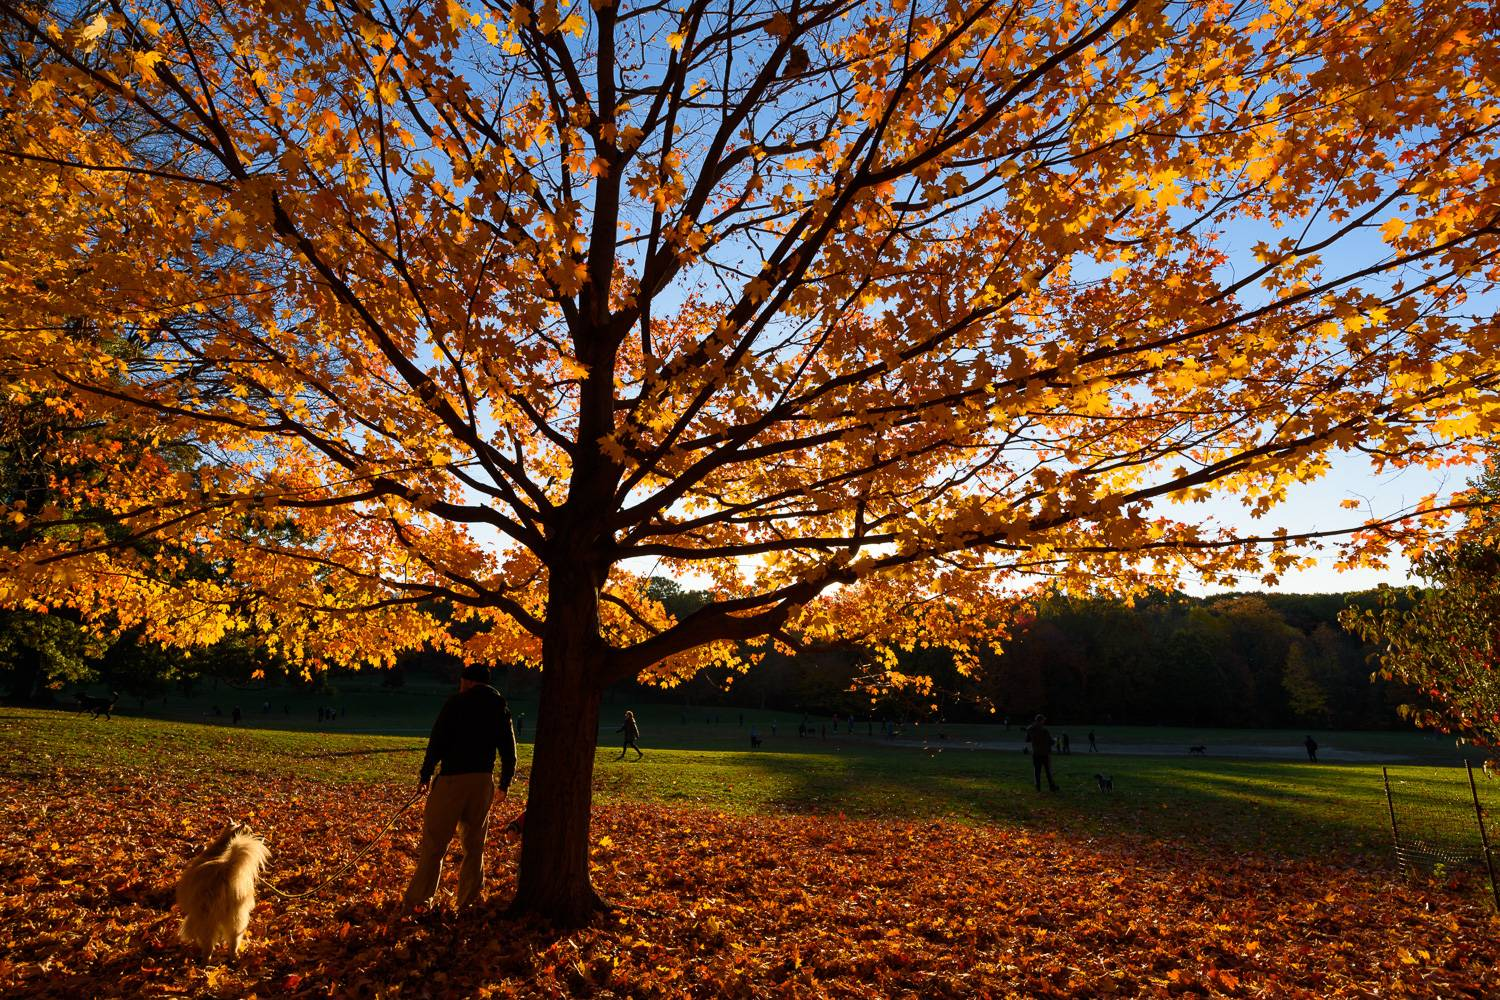 Image of a tree with orange foliage in November in Prospect Park.